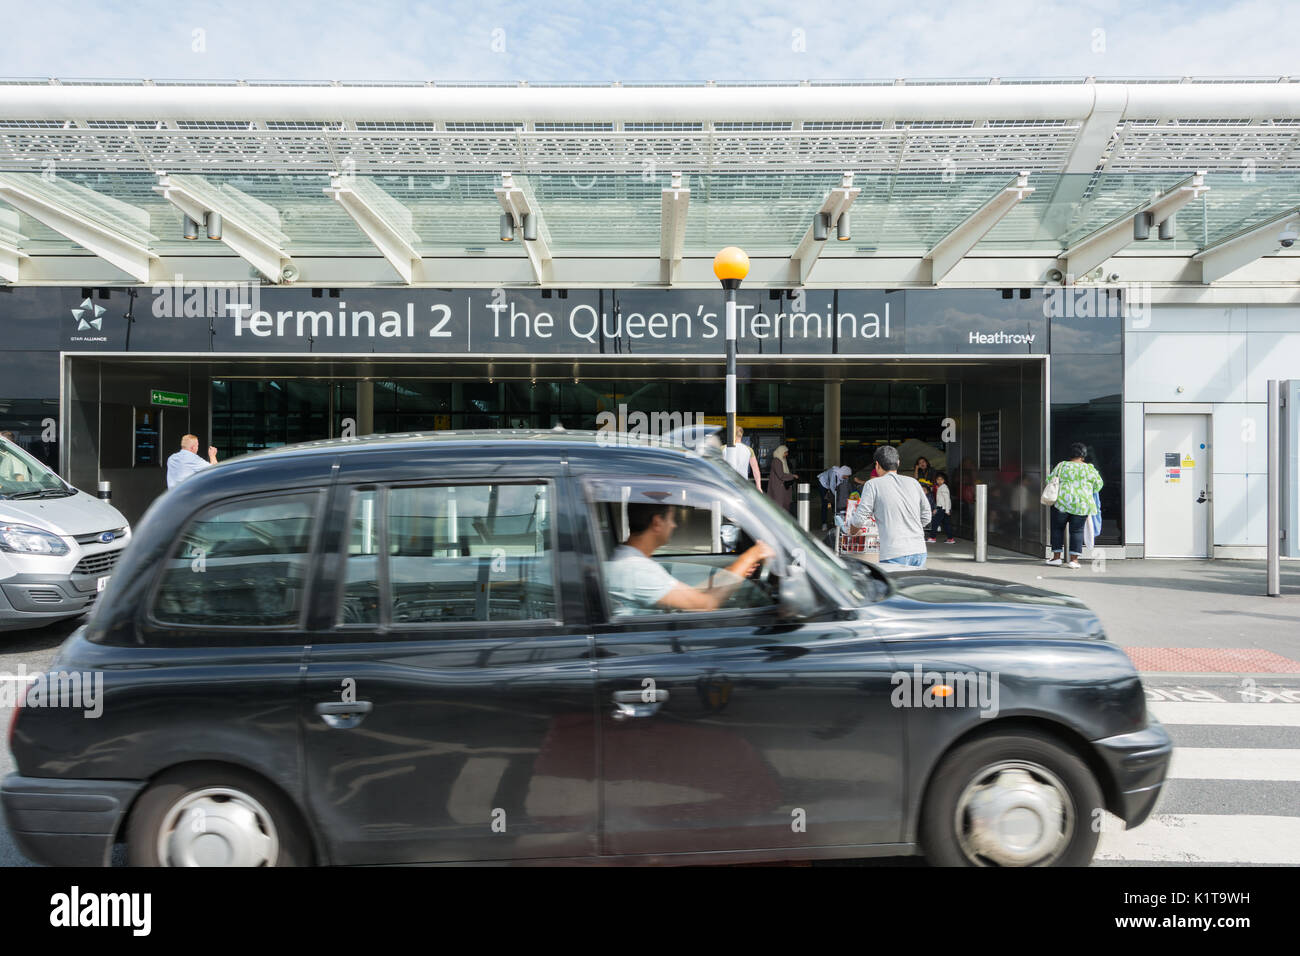 A black taxi cab outside Heathrow Airport Terminal Two Building, The Queens Terminal, London, UK Stock Photo